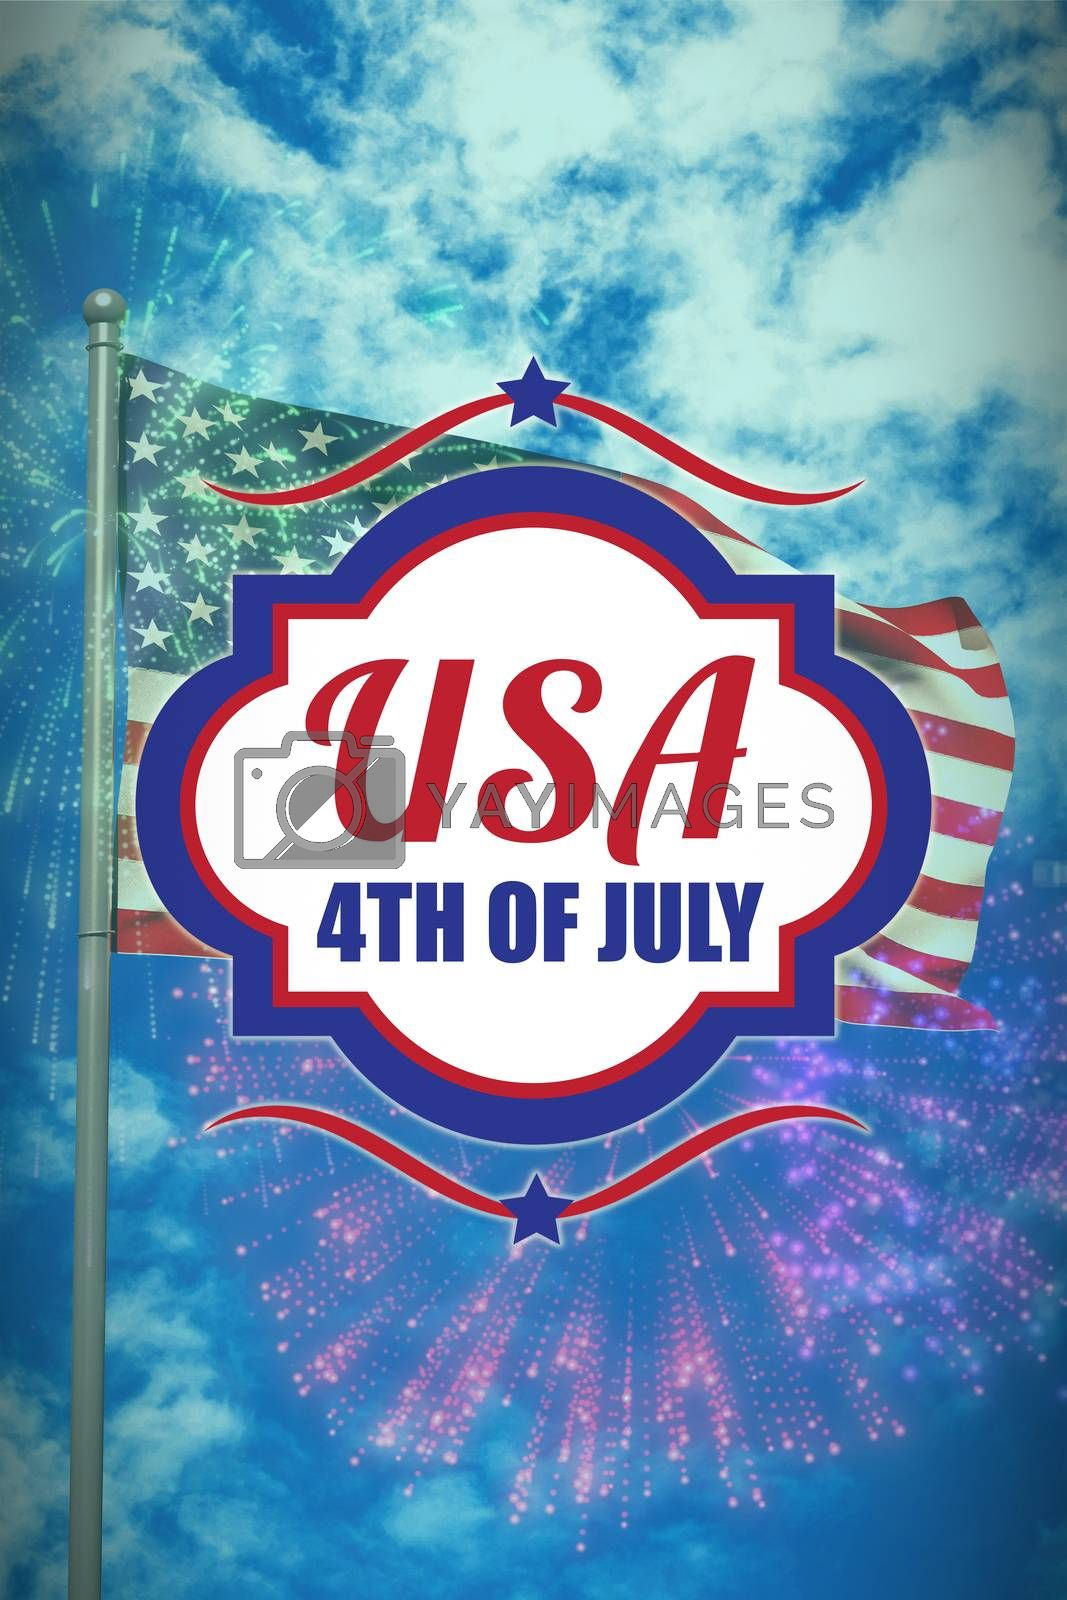 Royalty free image of Composite image of digitally generated image of 4th of july text  by Wavebreakmedia